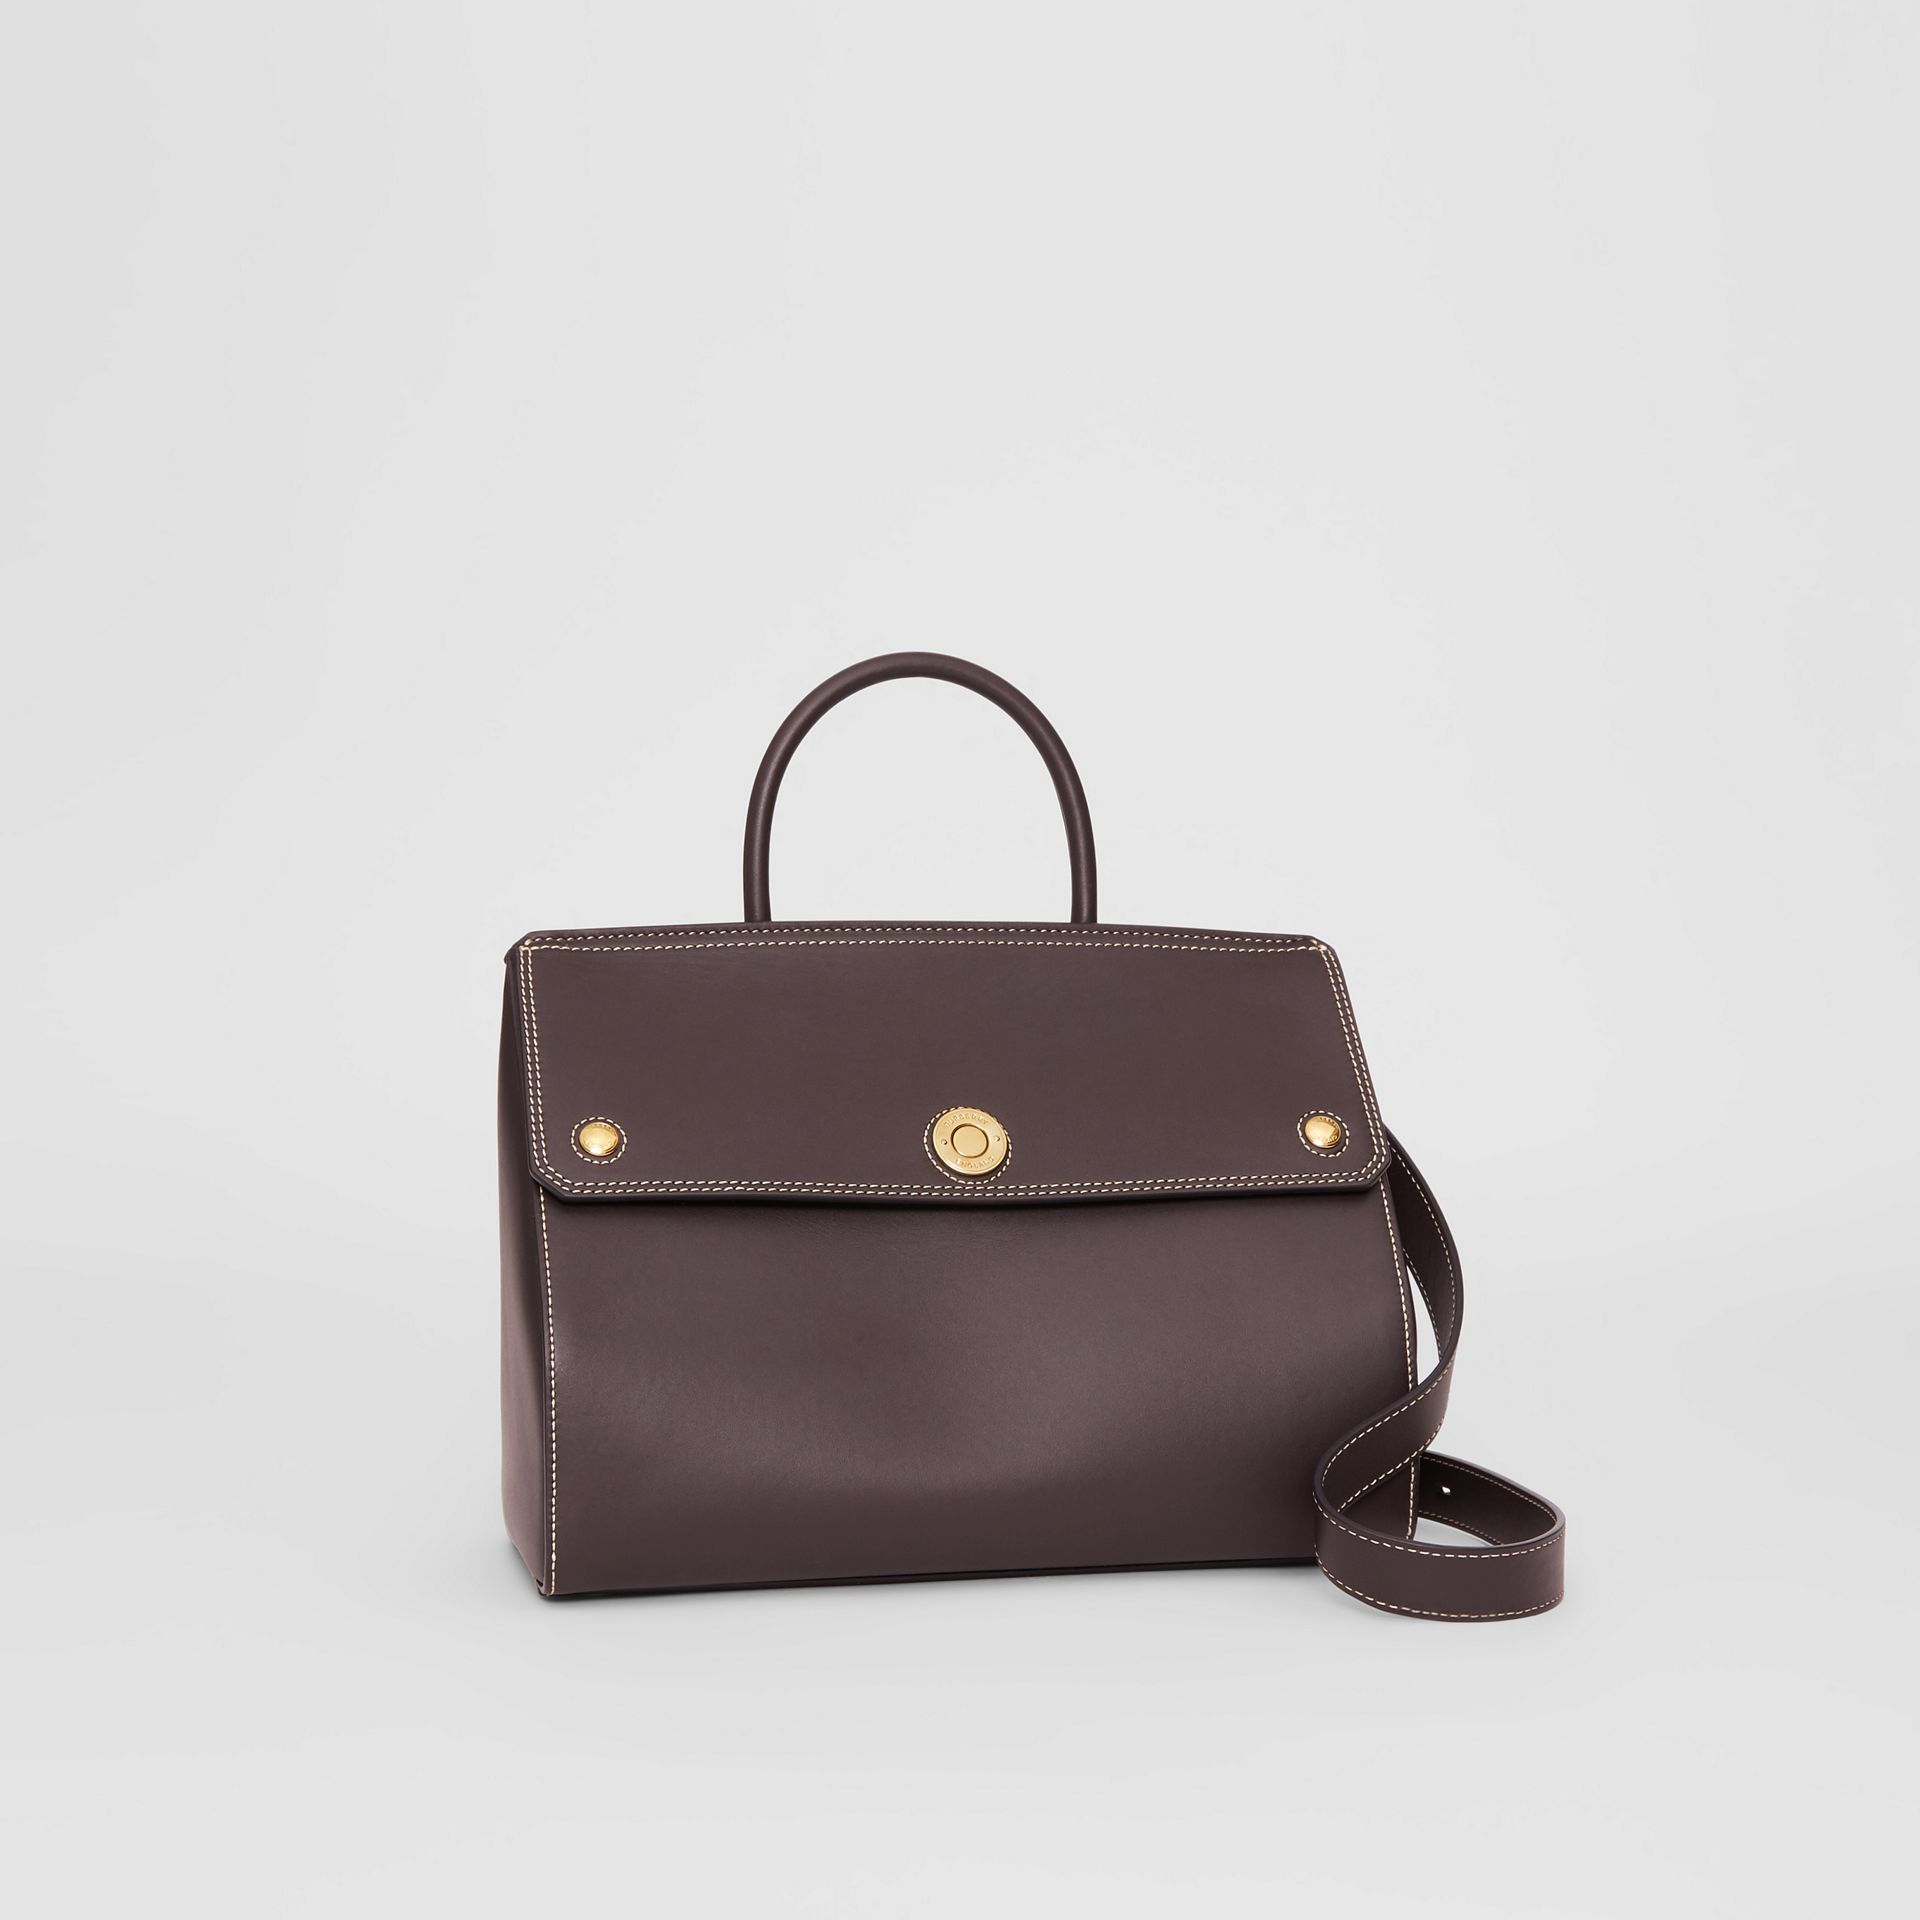 Small Leather Elizabeth Bag in Coffee - Women | Burberry United States - gallery image 6